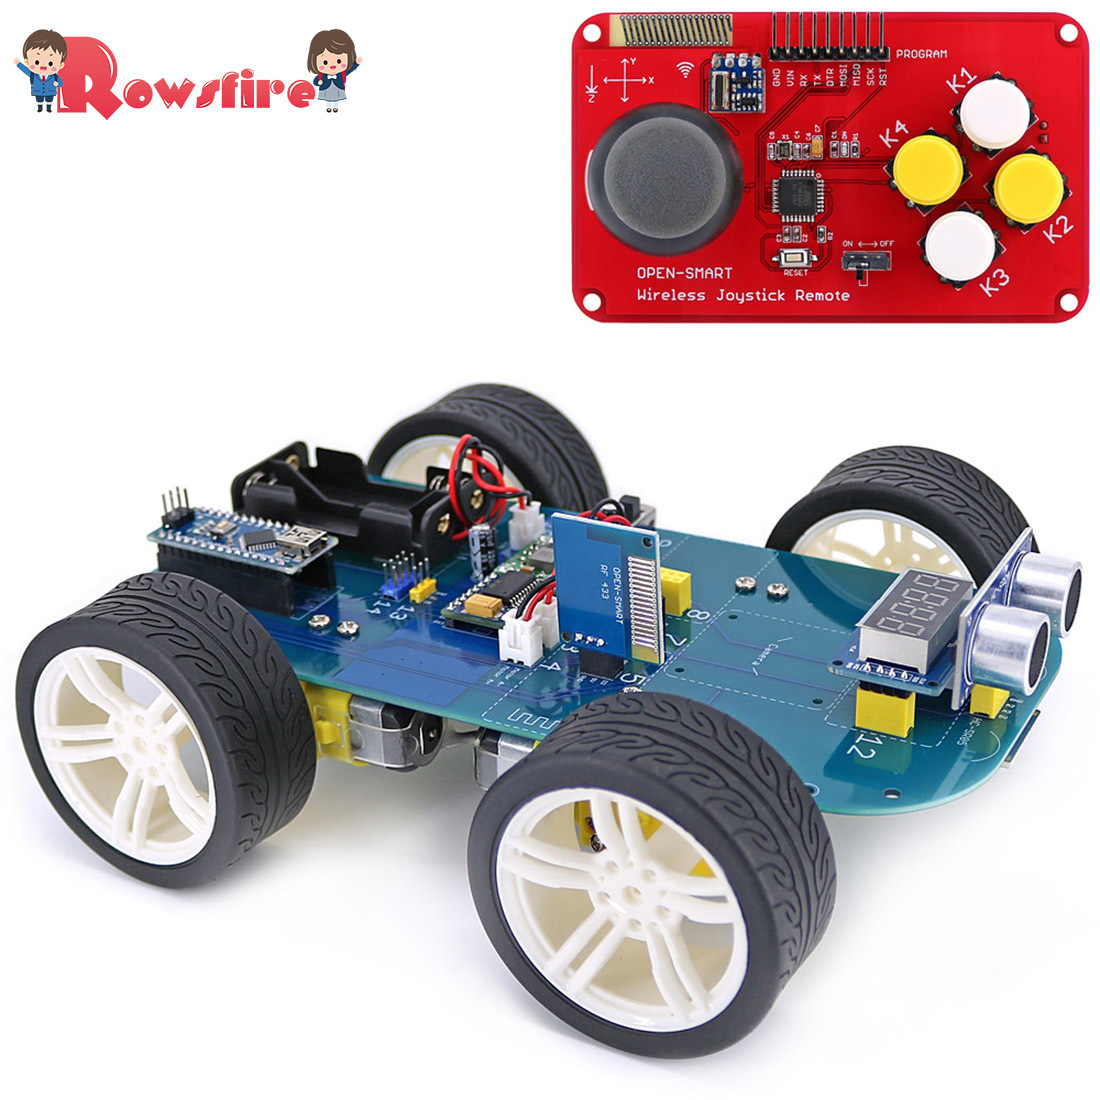 New 4wd 315/433mhz Wireless Joystick Remote Control Rubber Wheel Gear Motor Smart Car Kit For Arduino High-tech Programmable Toy